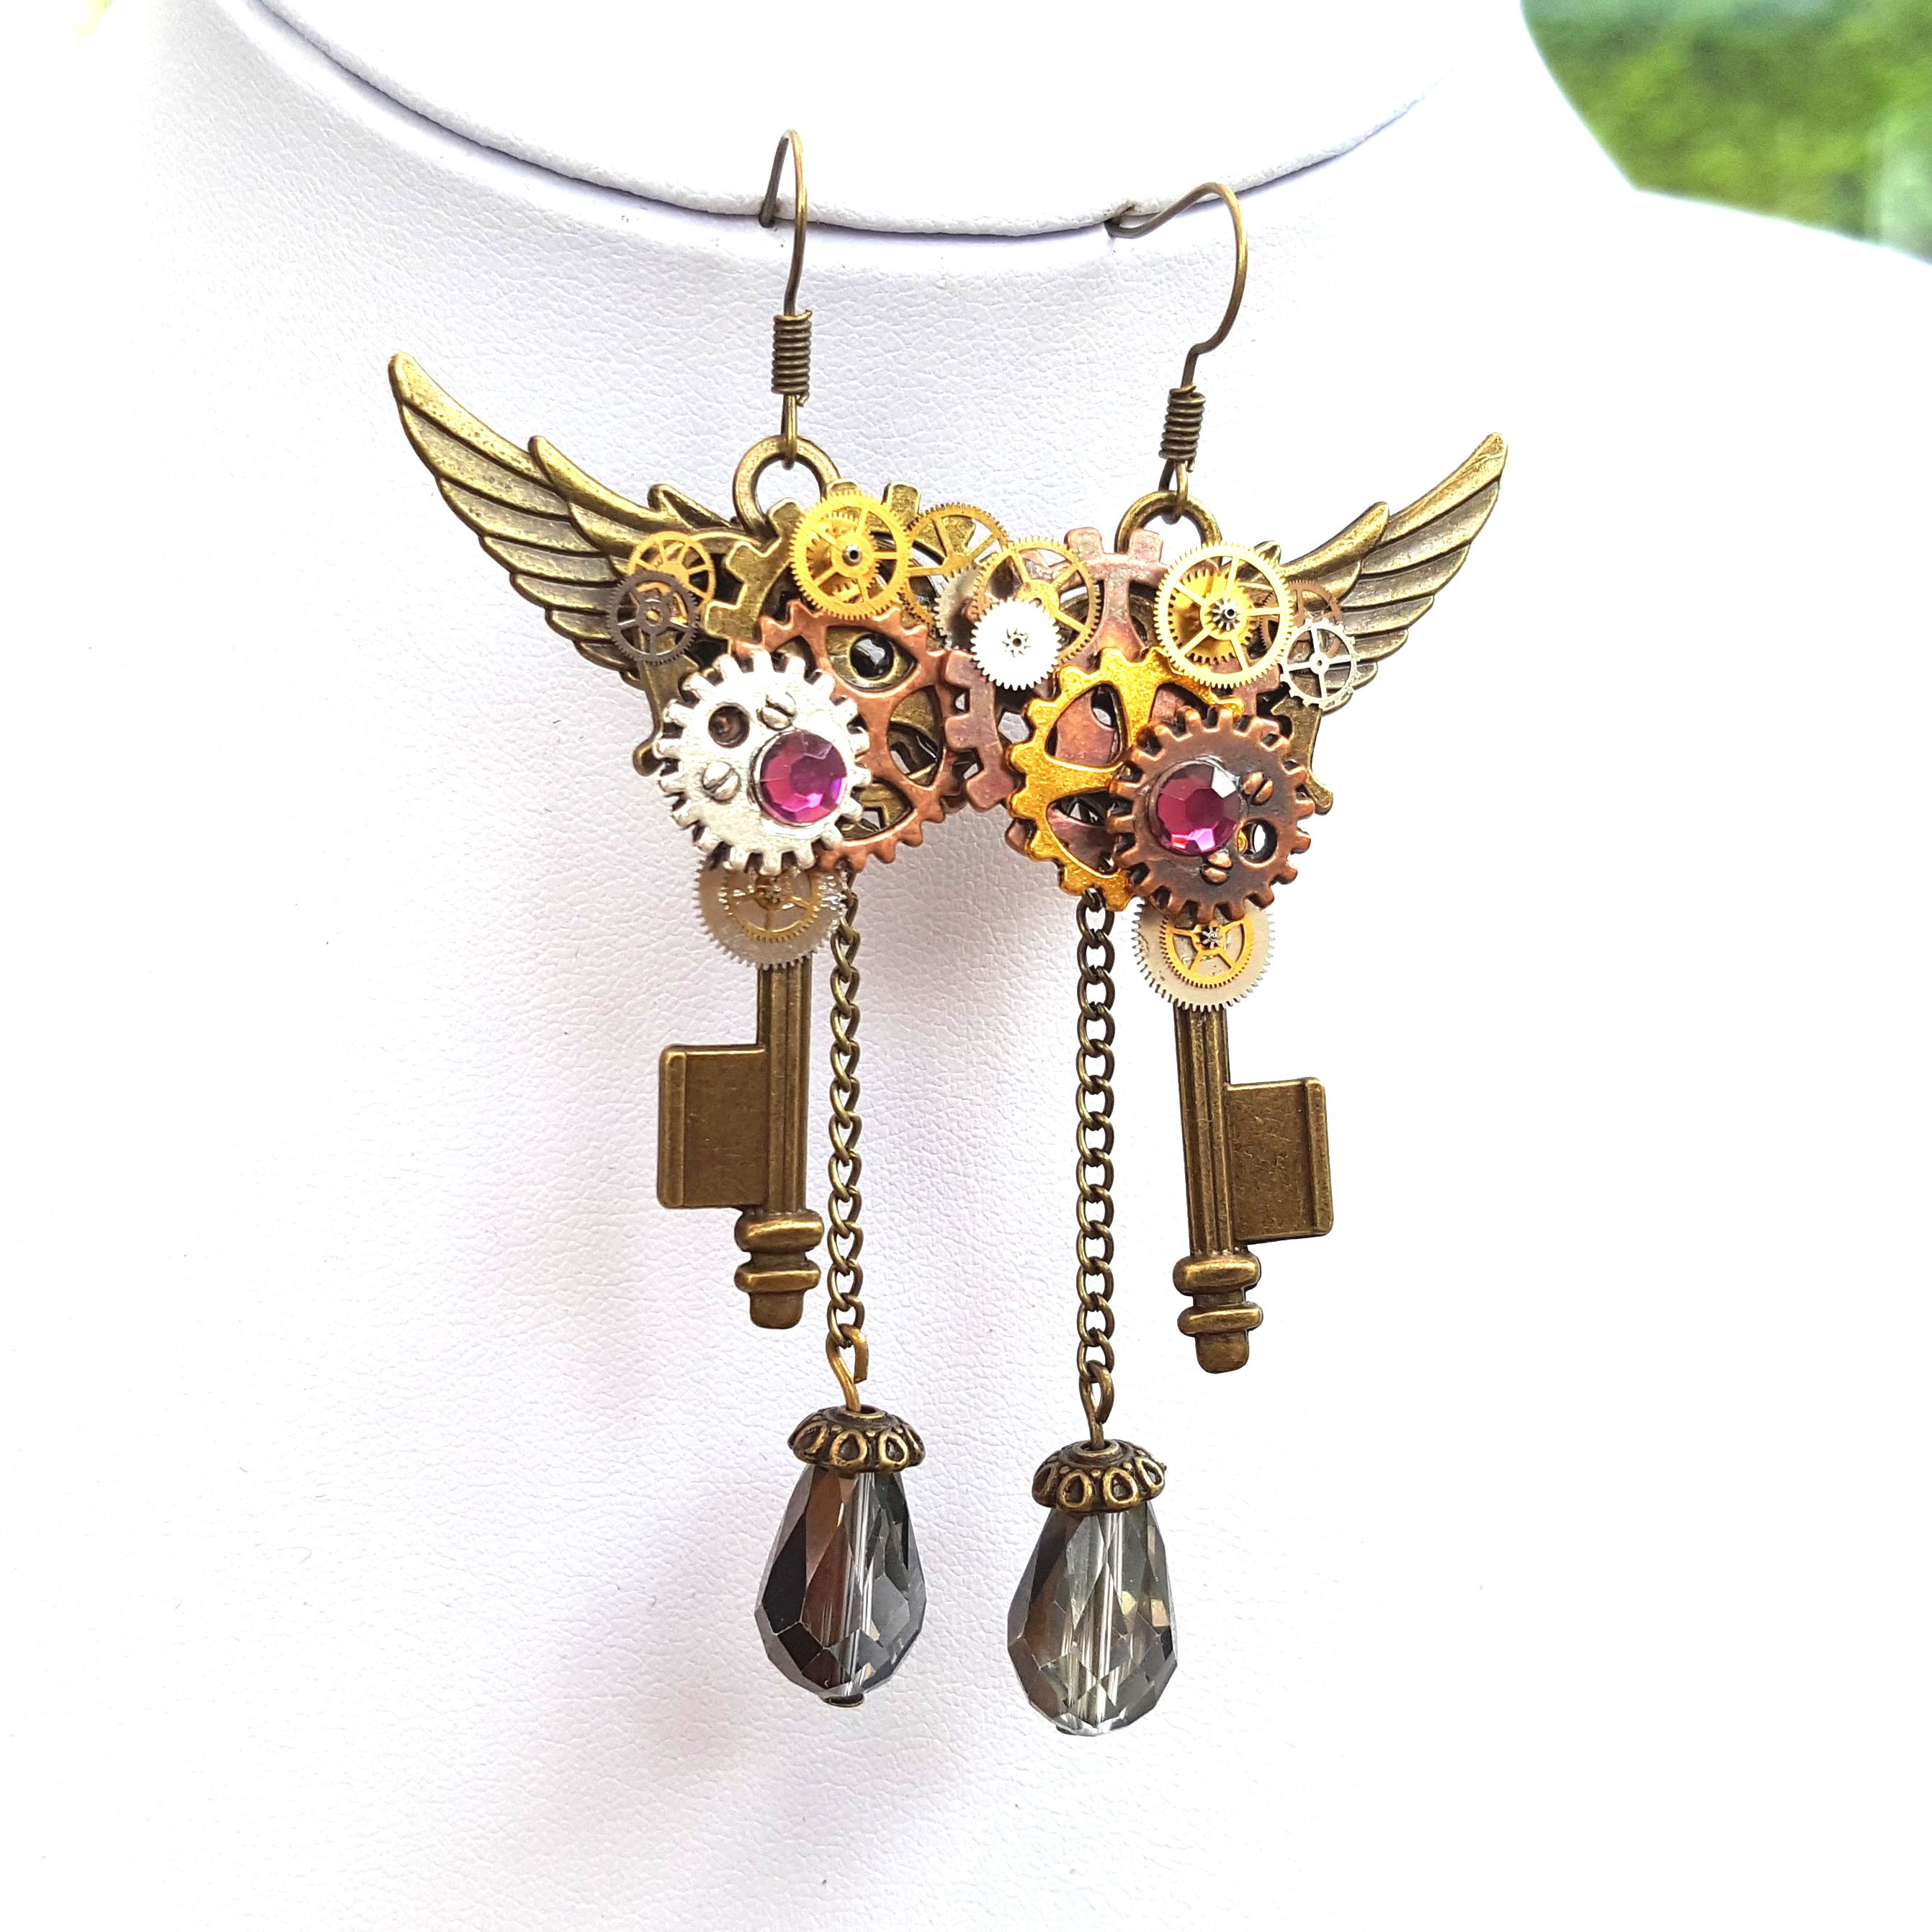 Steampunk Key Earrings - Handmade Steampunk Jewellery